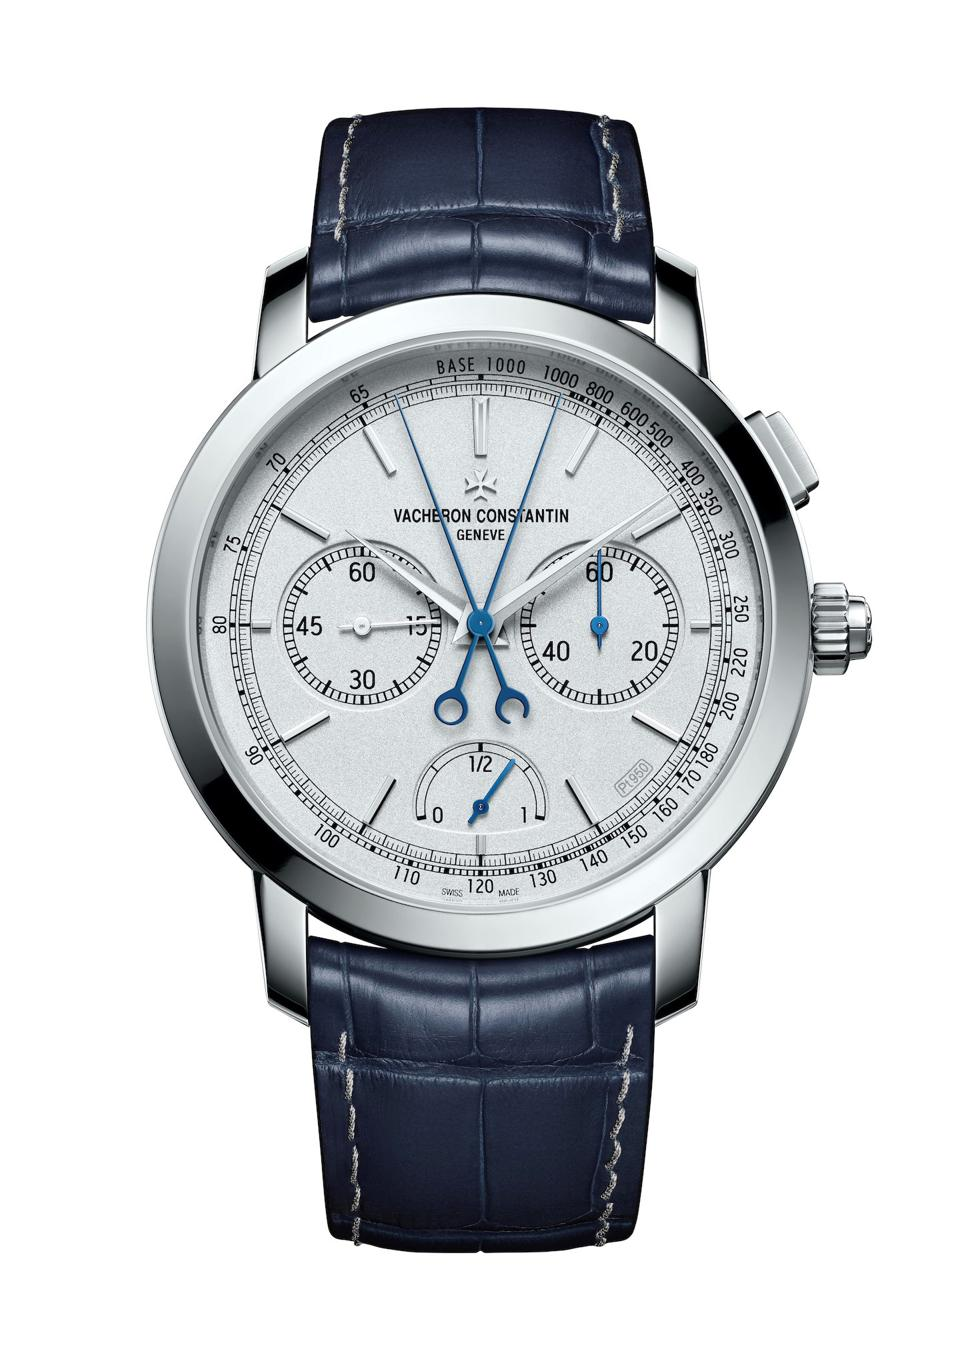 Vacheron Constantin Unveils its platinum Traditionnellel  Chronograph Split Second watch